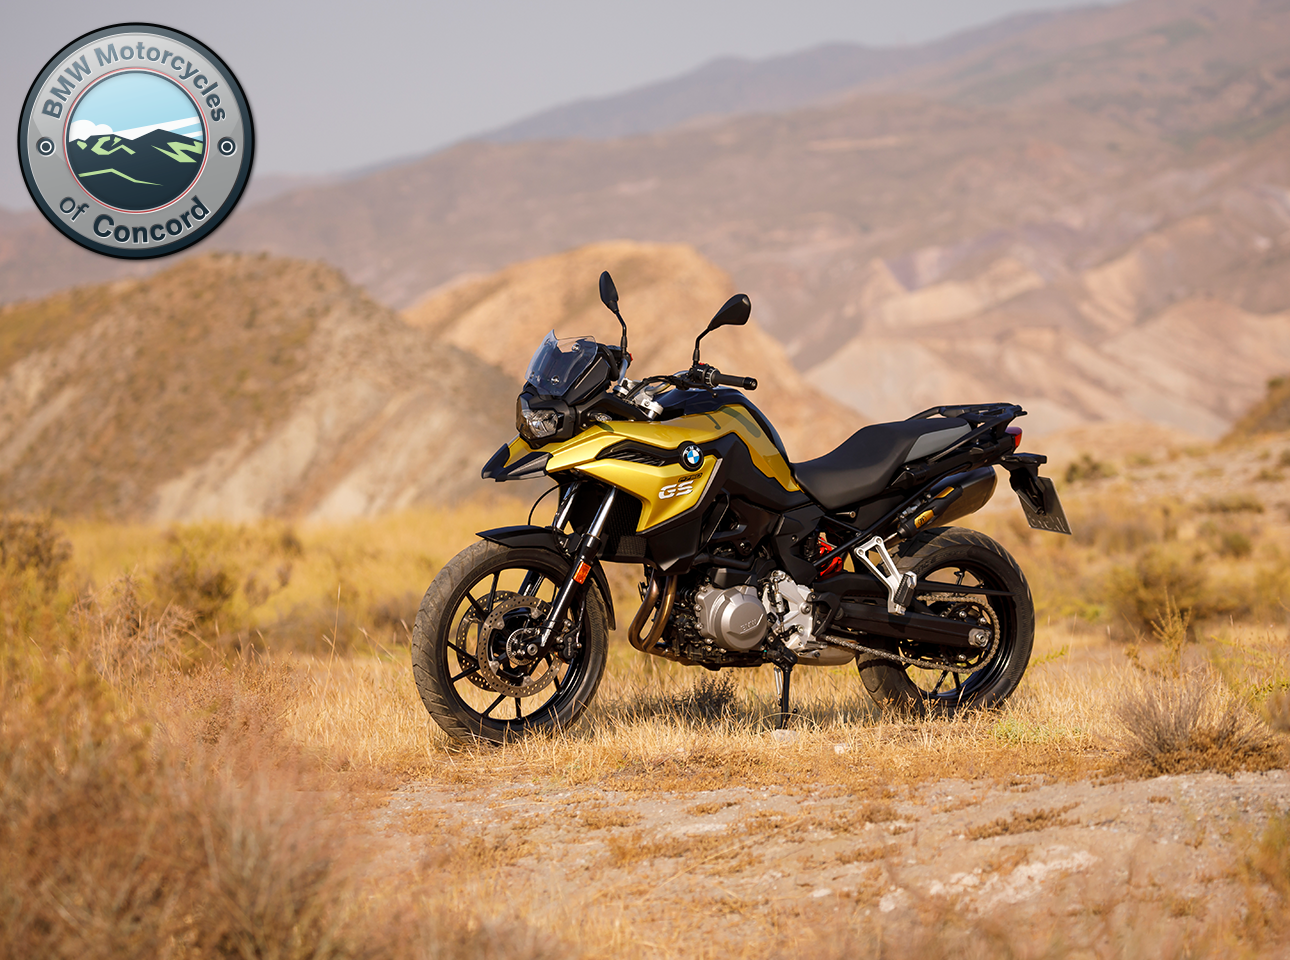 BMW Motorcycles of Concord  - BMW F750 GS Image 1